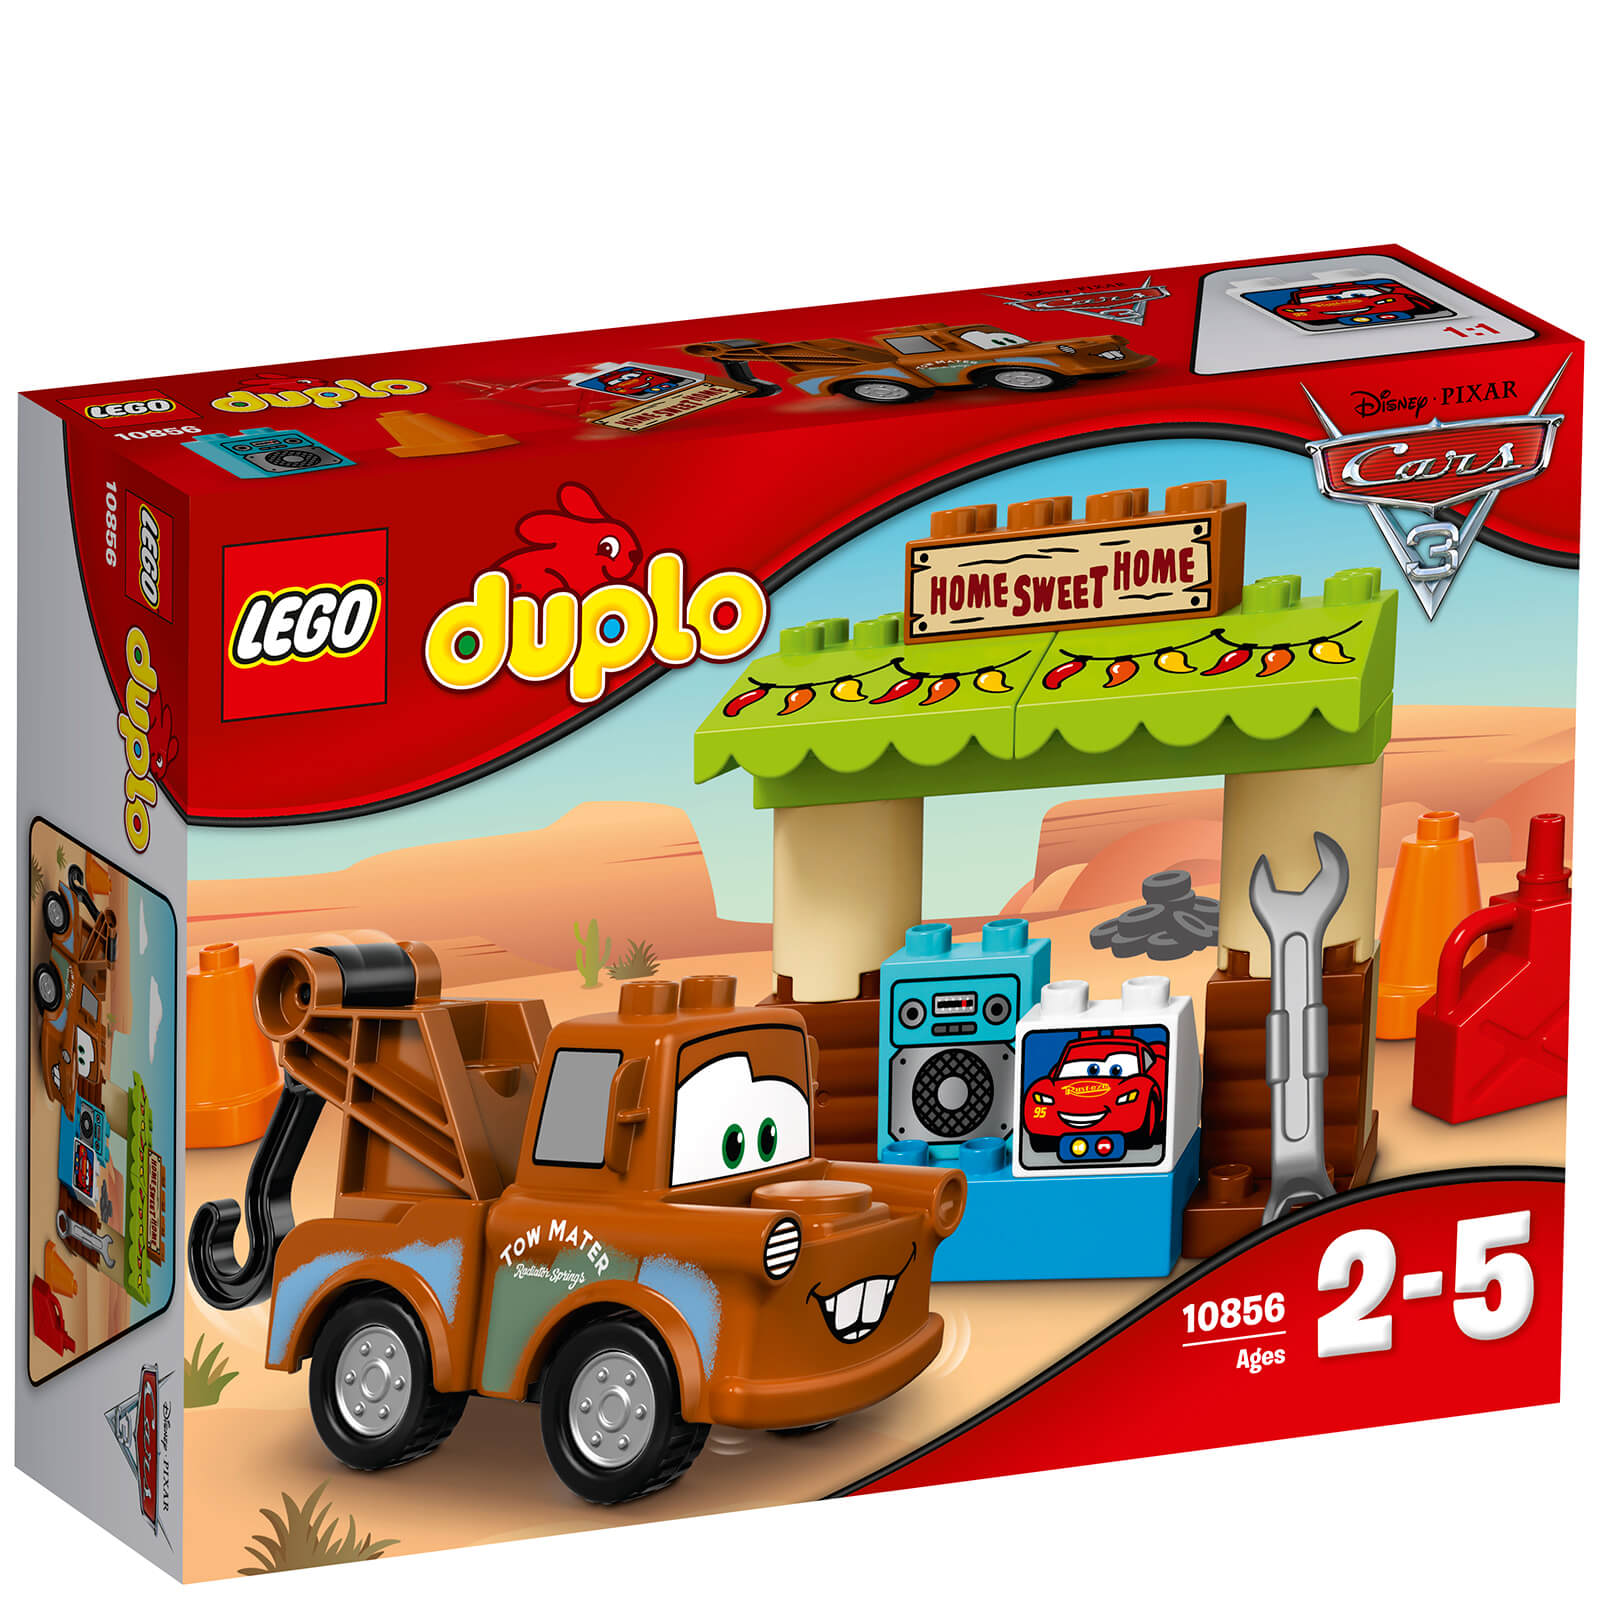 LEGO DUPLO: Cars 3 Mater